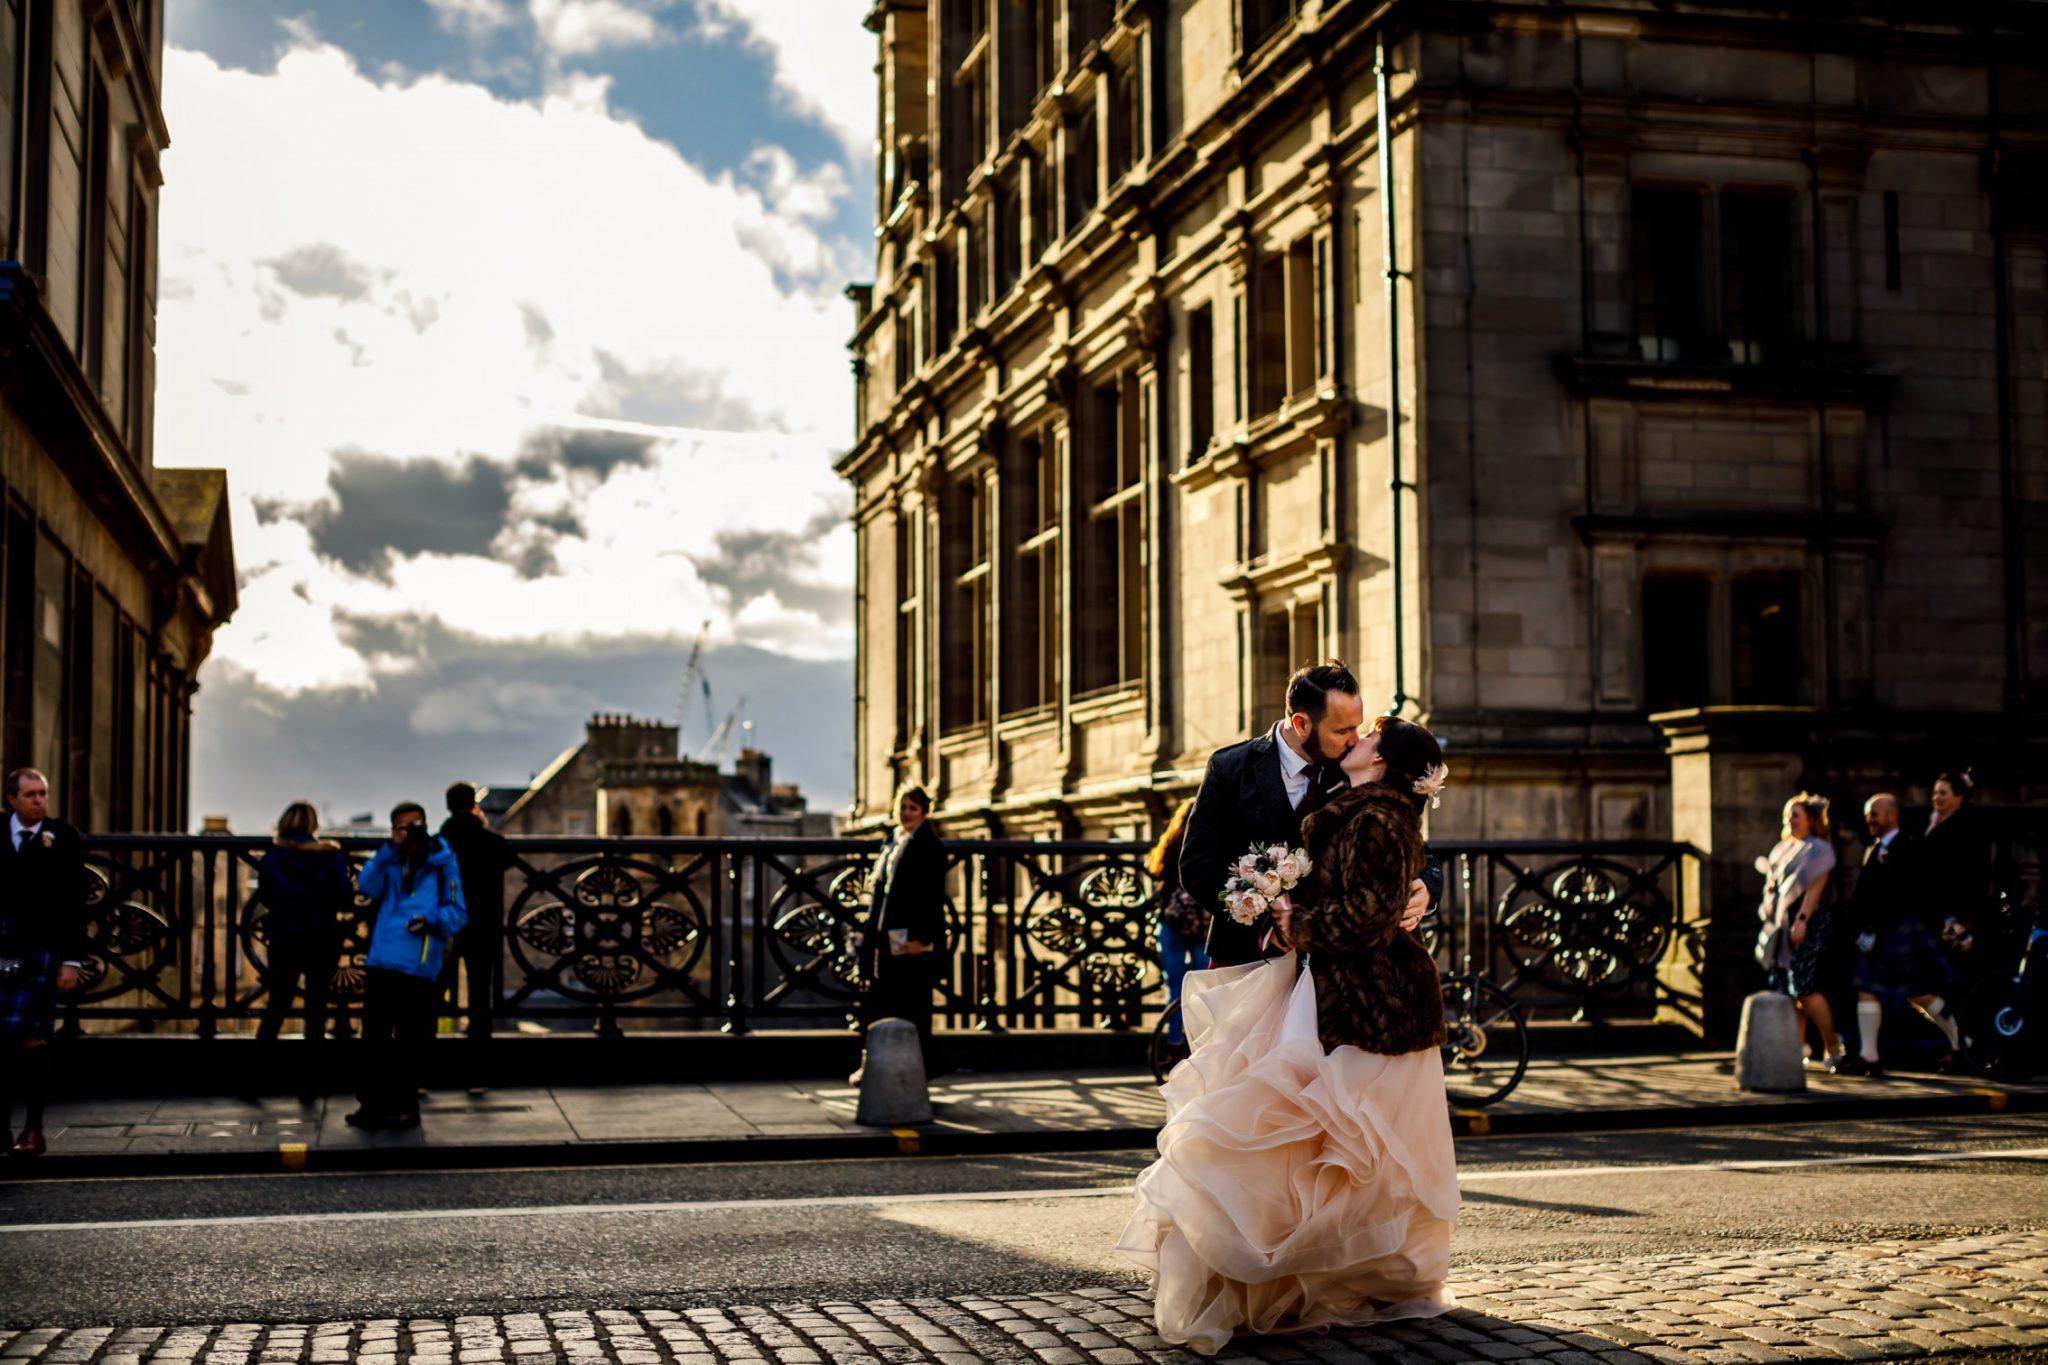 Unique Wedding Venues- Unconventional Wedding- Lina & Tom Photography- Outdoor Wedding Photos in Edinburgh